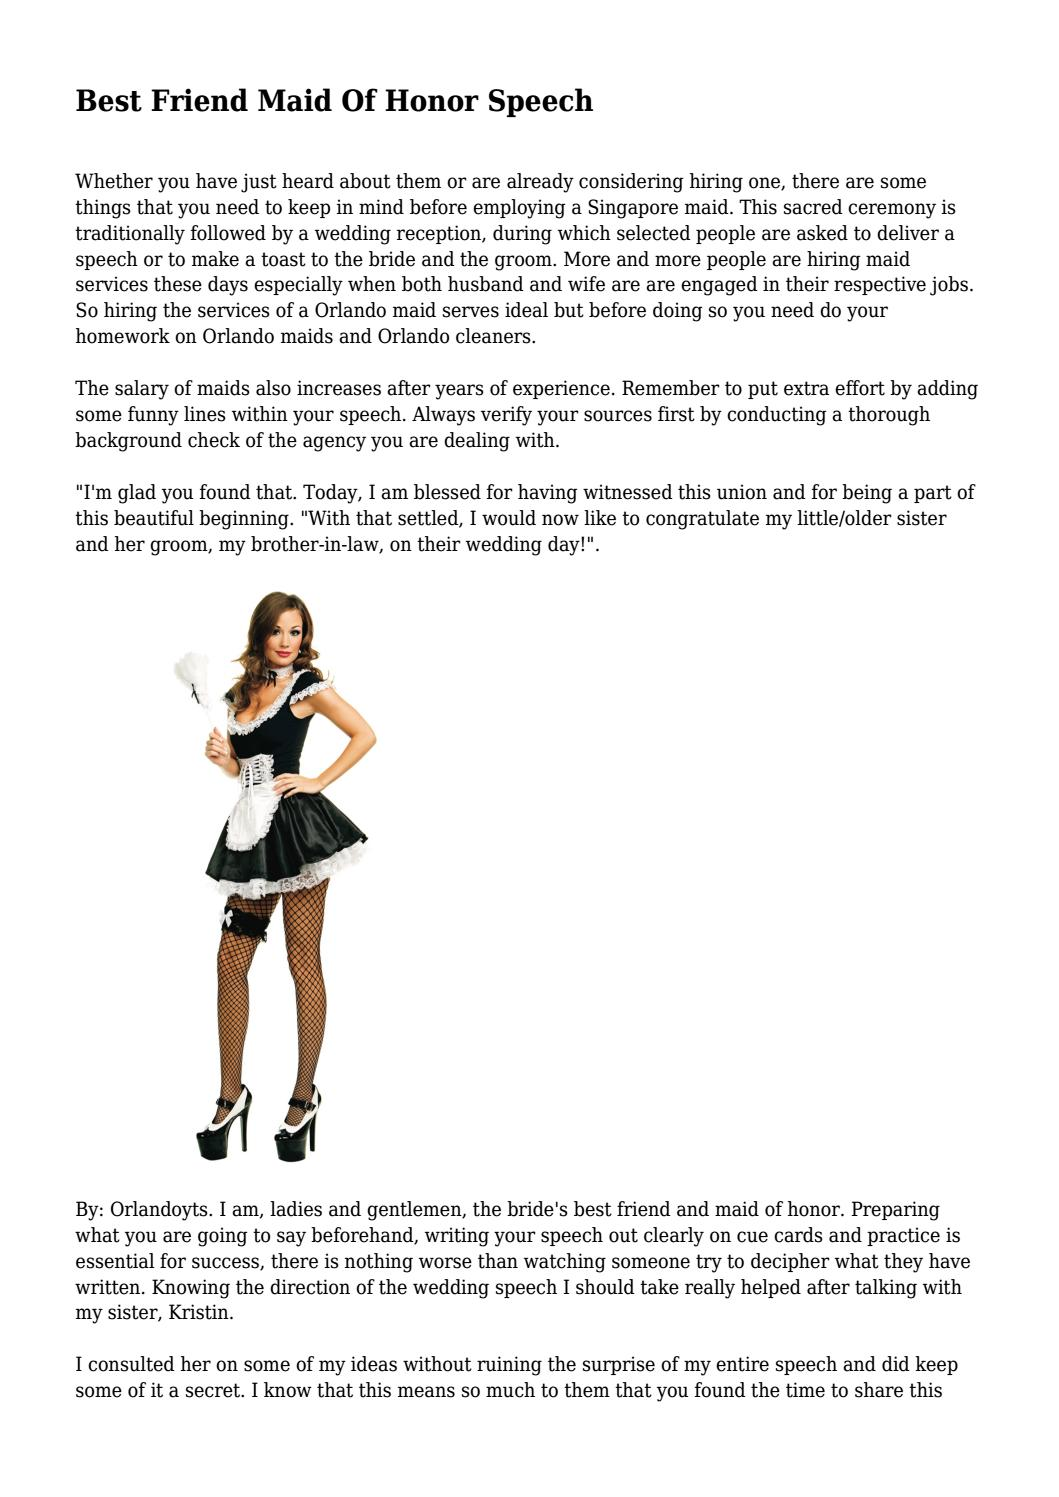 Funny Maid Honor Speeches Best Friend